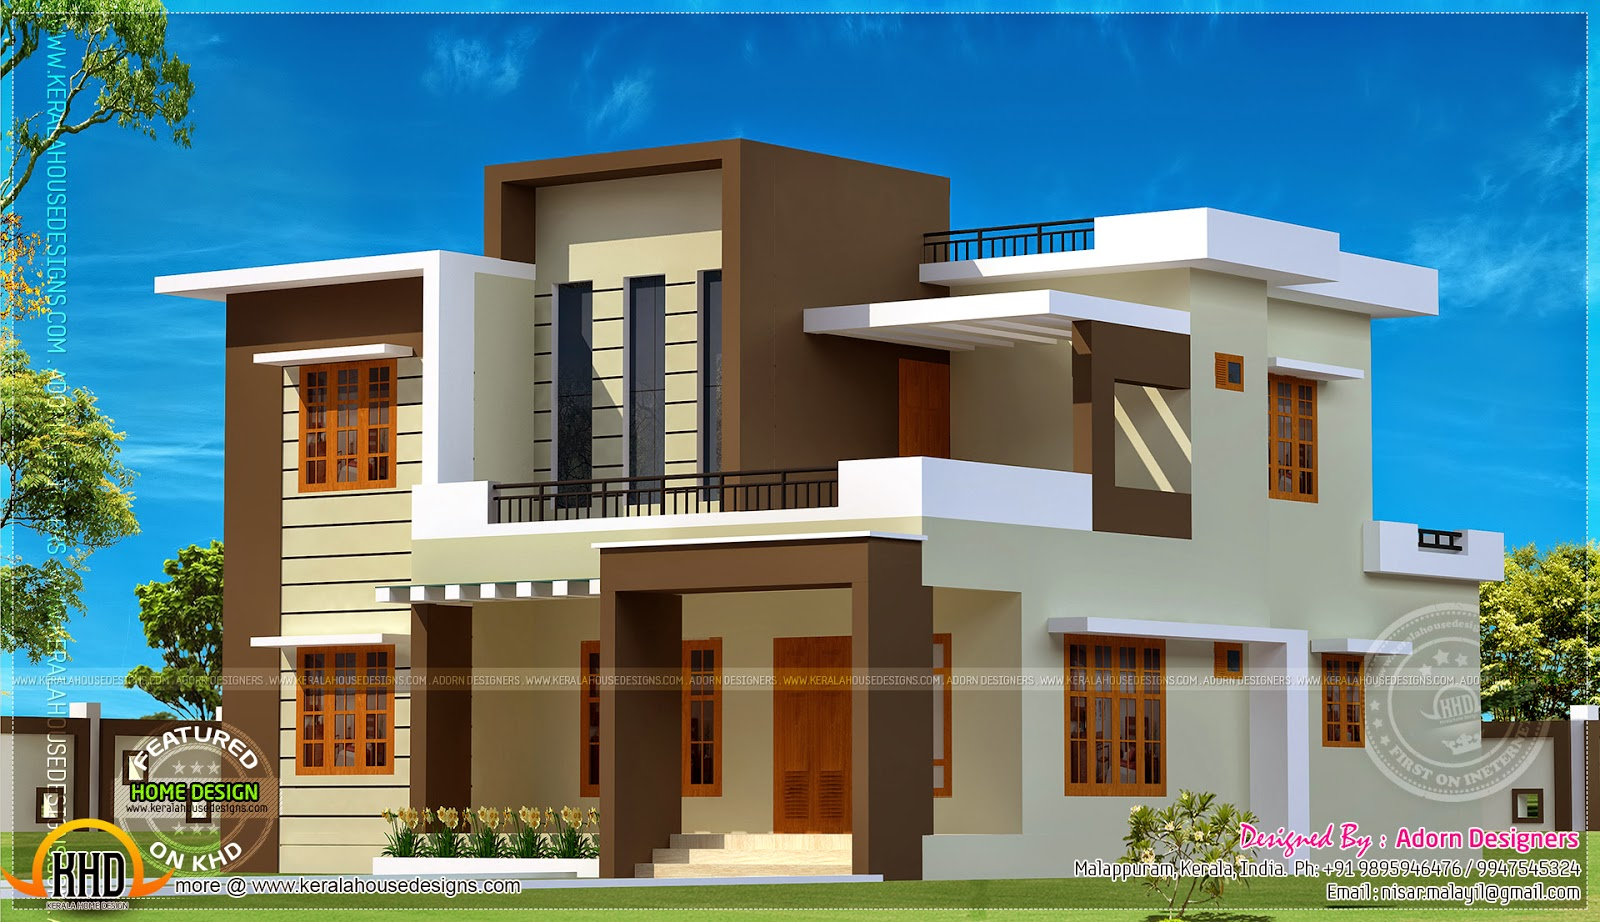 204 square meter flat roof house kerala home design and for Kerala home design flat roof elevation